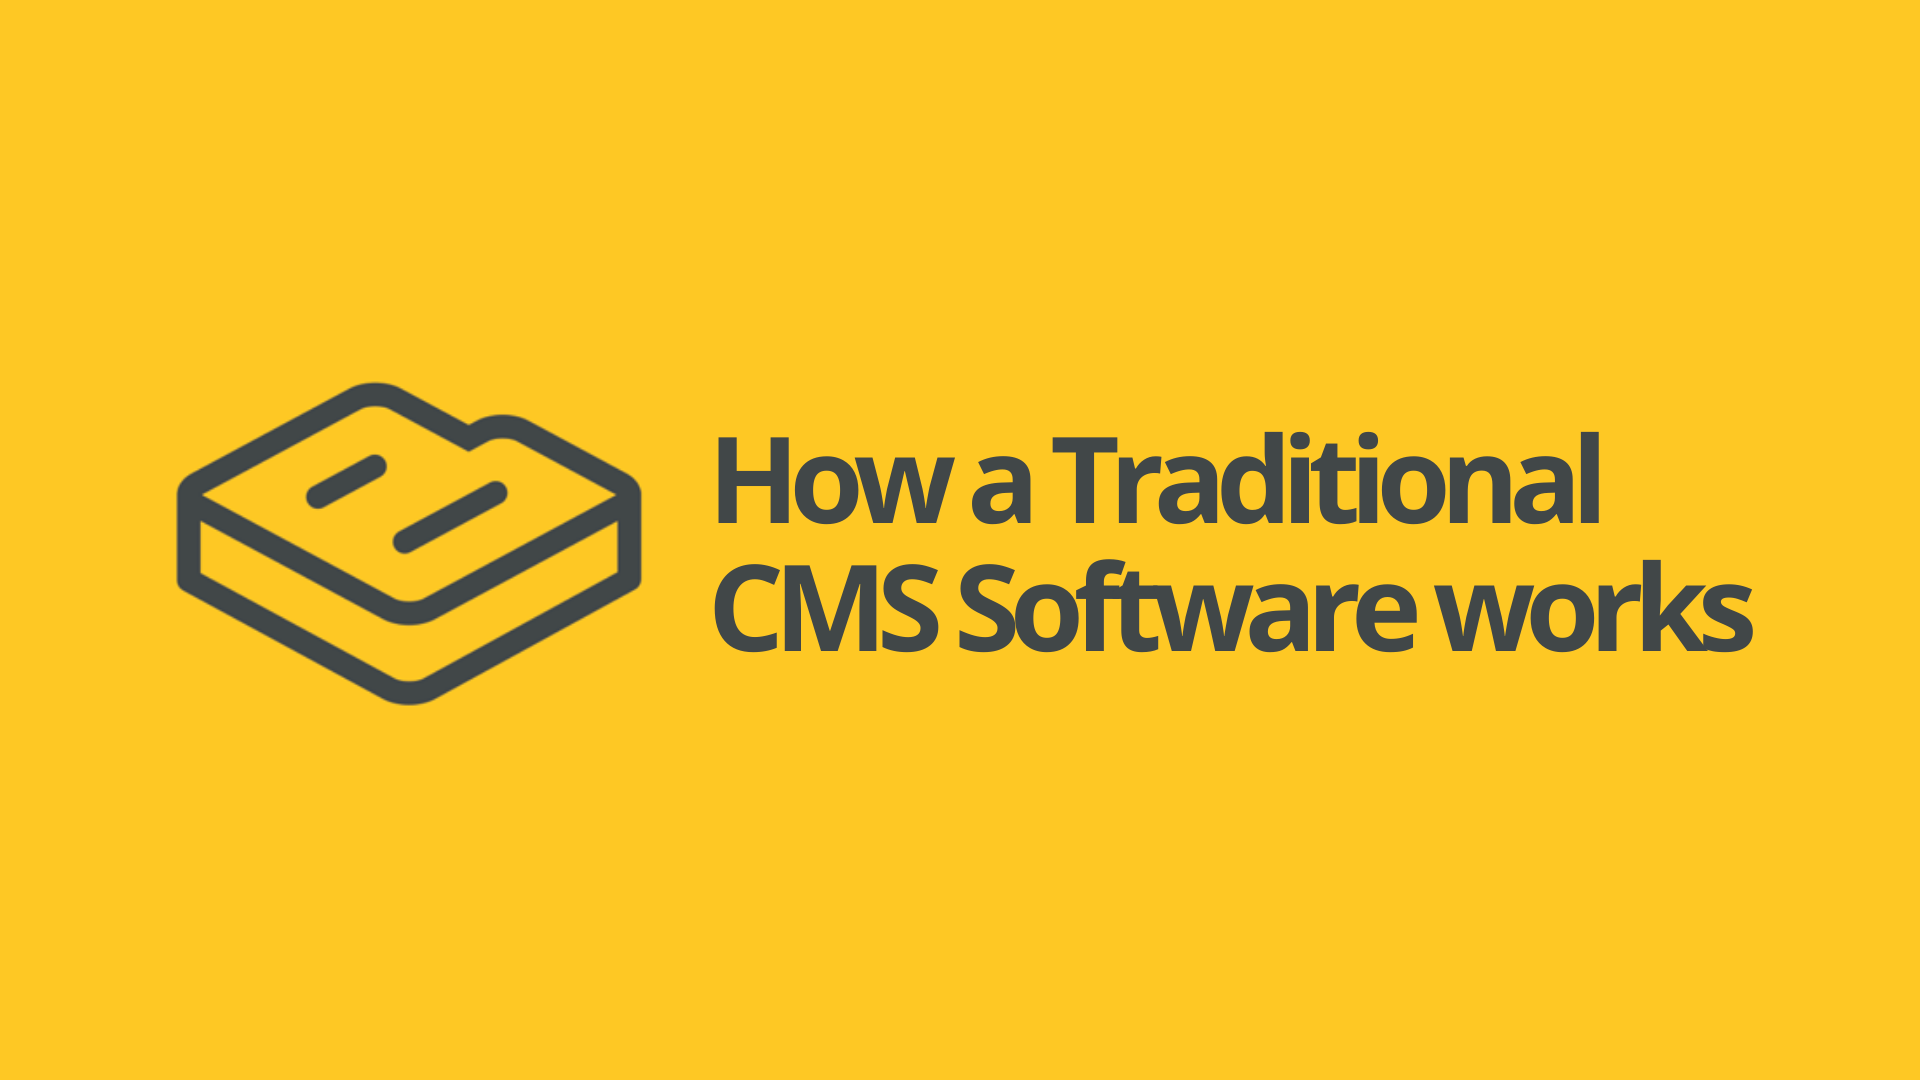 What Is Traditional CMS Software?